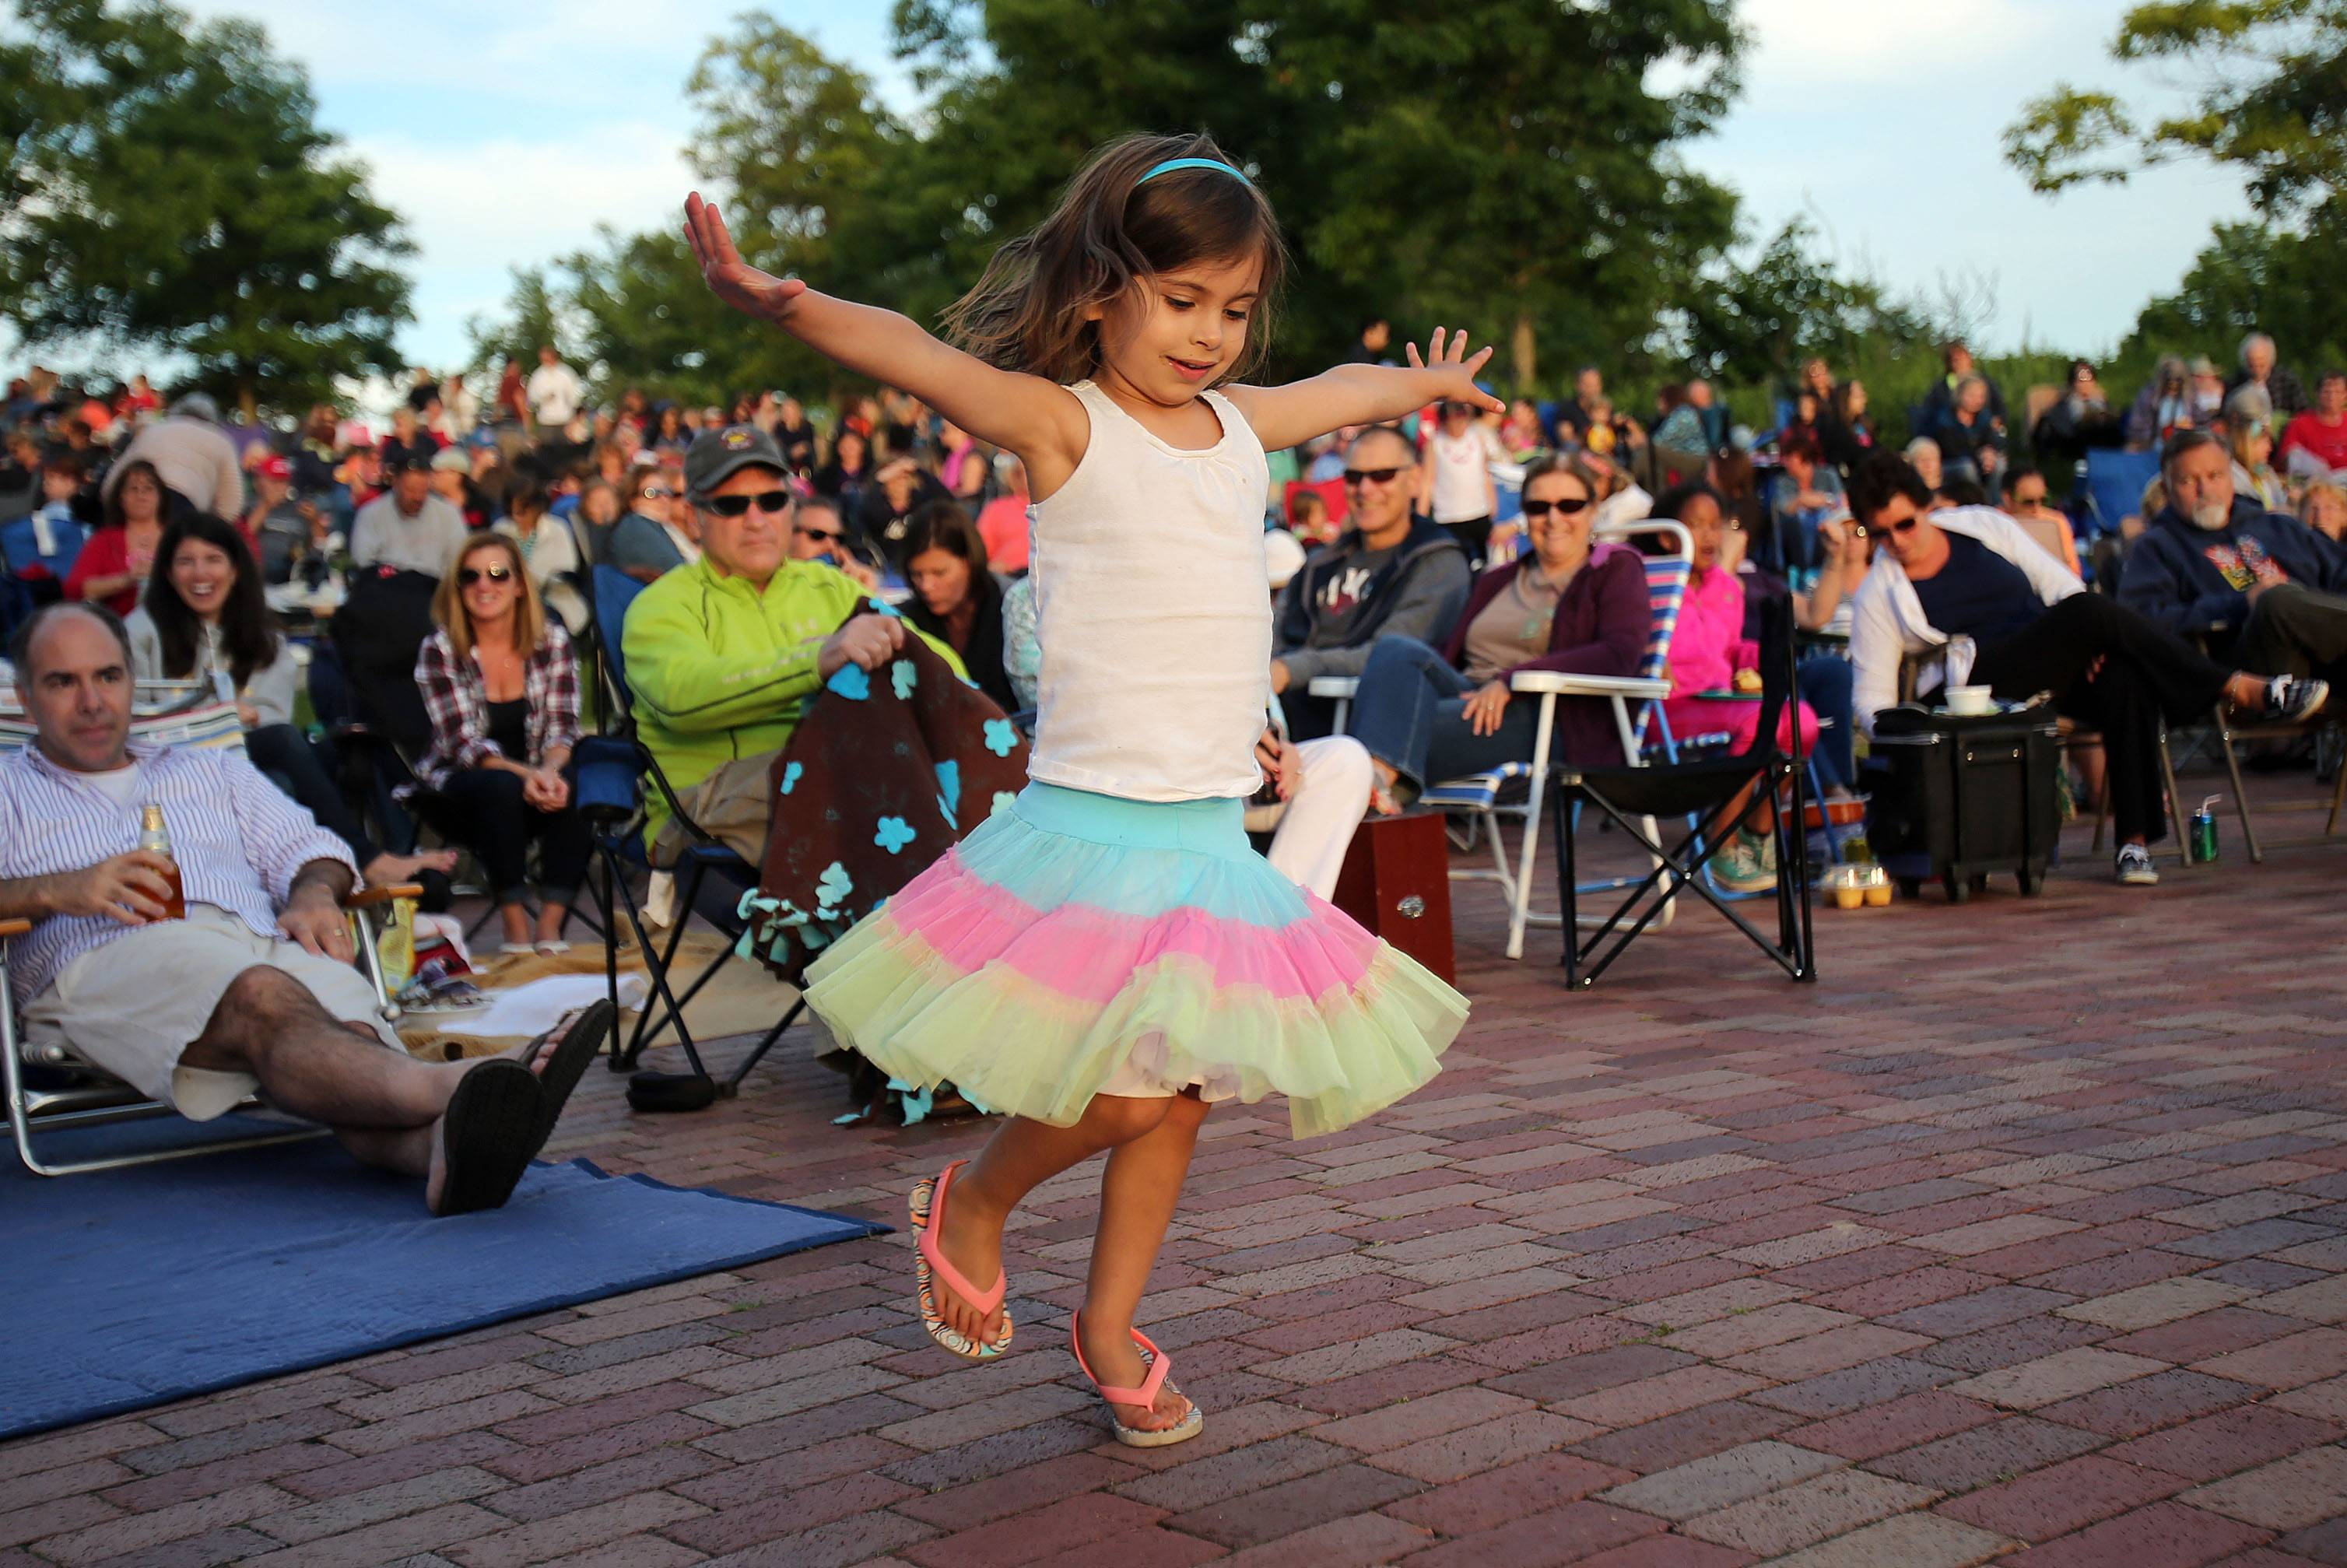 Four-year-old Claire Rehmer, of Libertyville, dances to the American roots musical stylings of the Dang-Its at Independence Grove Forest Preserve as part of its Events in the Plaza series Tuesday in Libertyville.